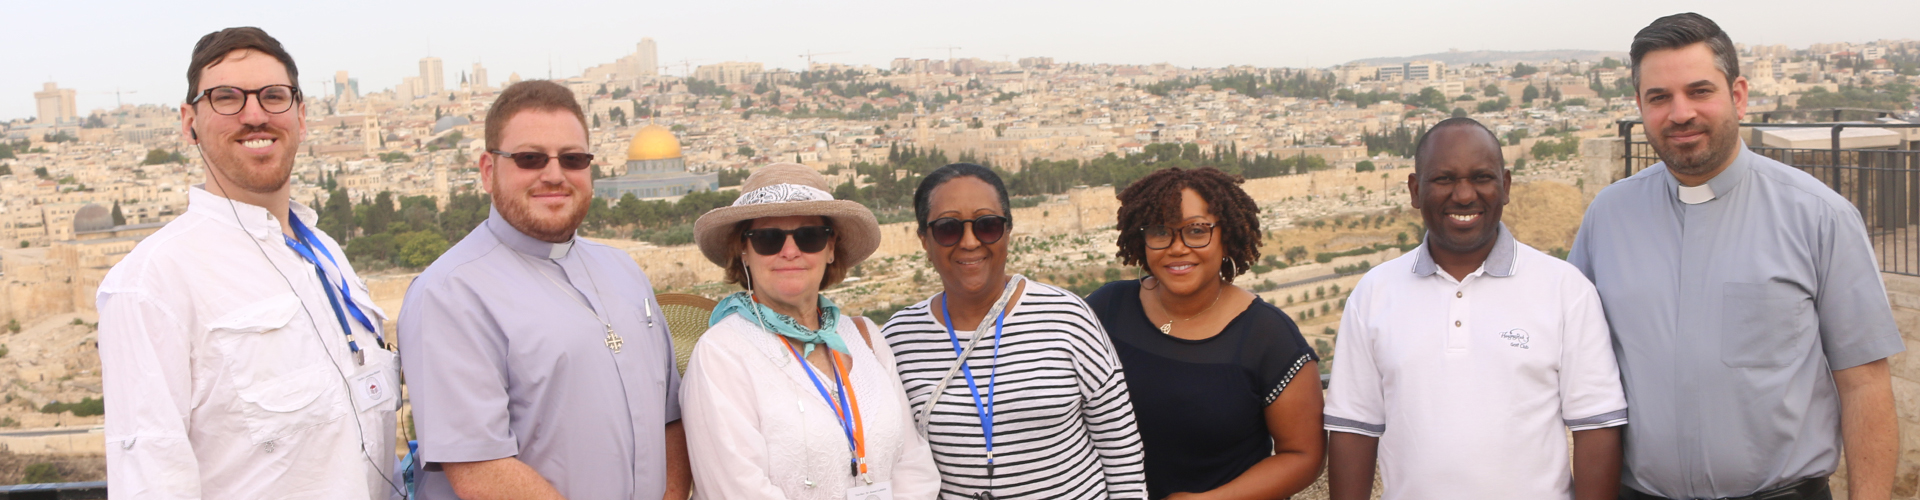 Global Impact Trip to the Holy Land